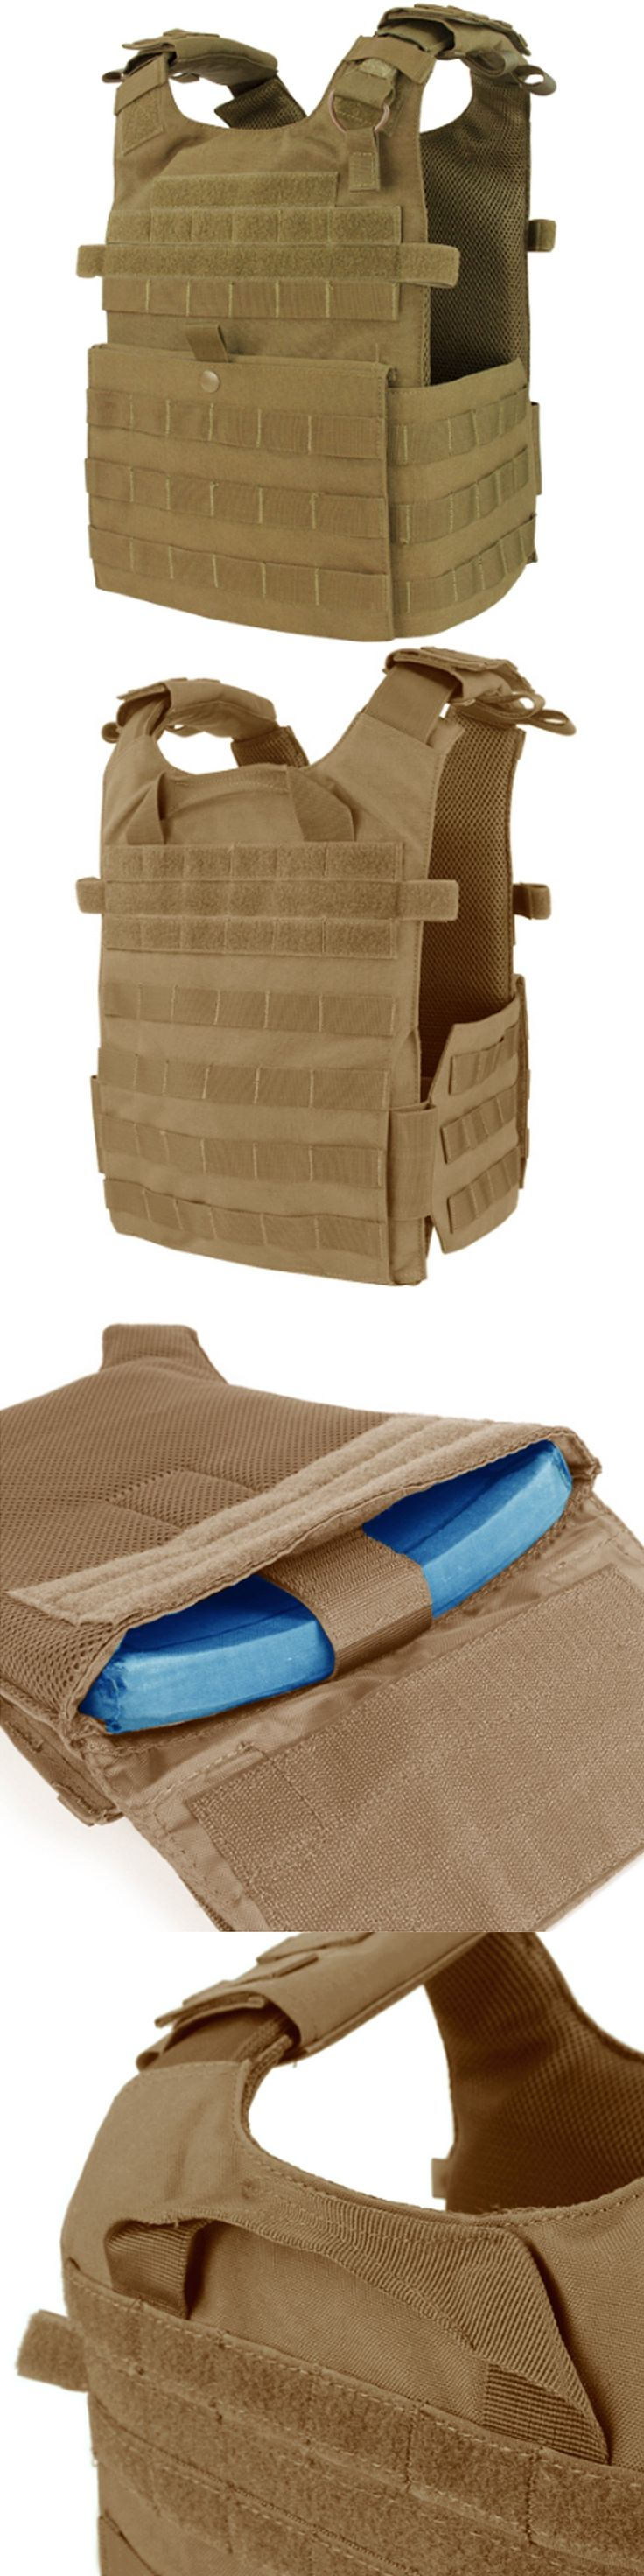 Chest Rigs and Tactical Vests 177891: Condor 201039 Coyote Molle Tactical Gunner Lightweight Esapi Plate Carrier Vest -> BUY IT NOW ONLY: $67.25 on eBay!